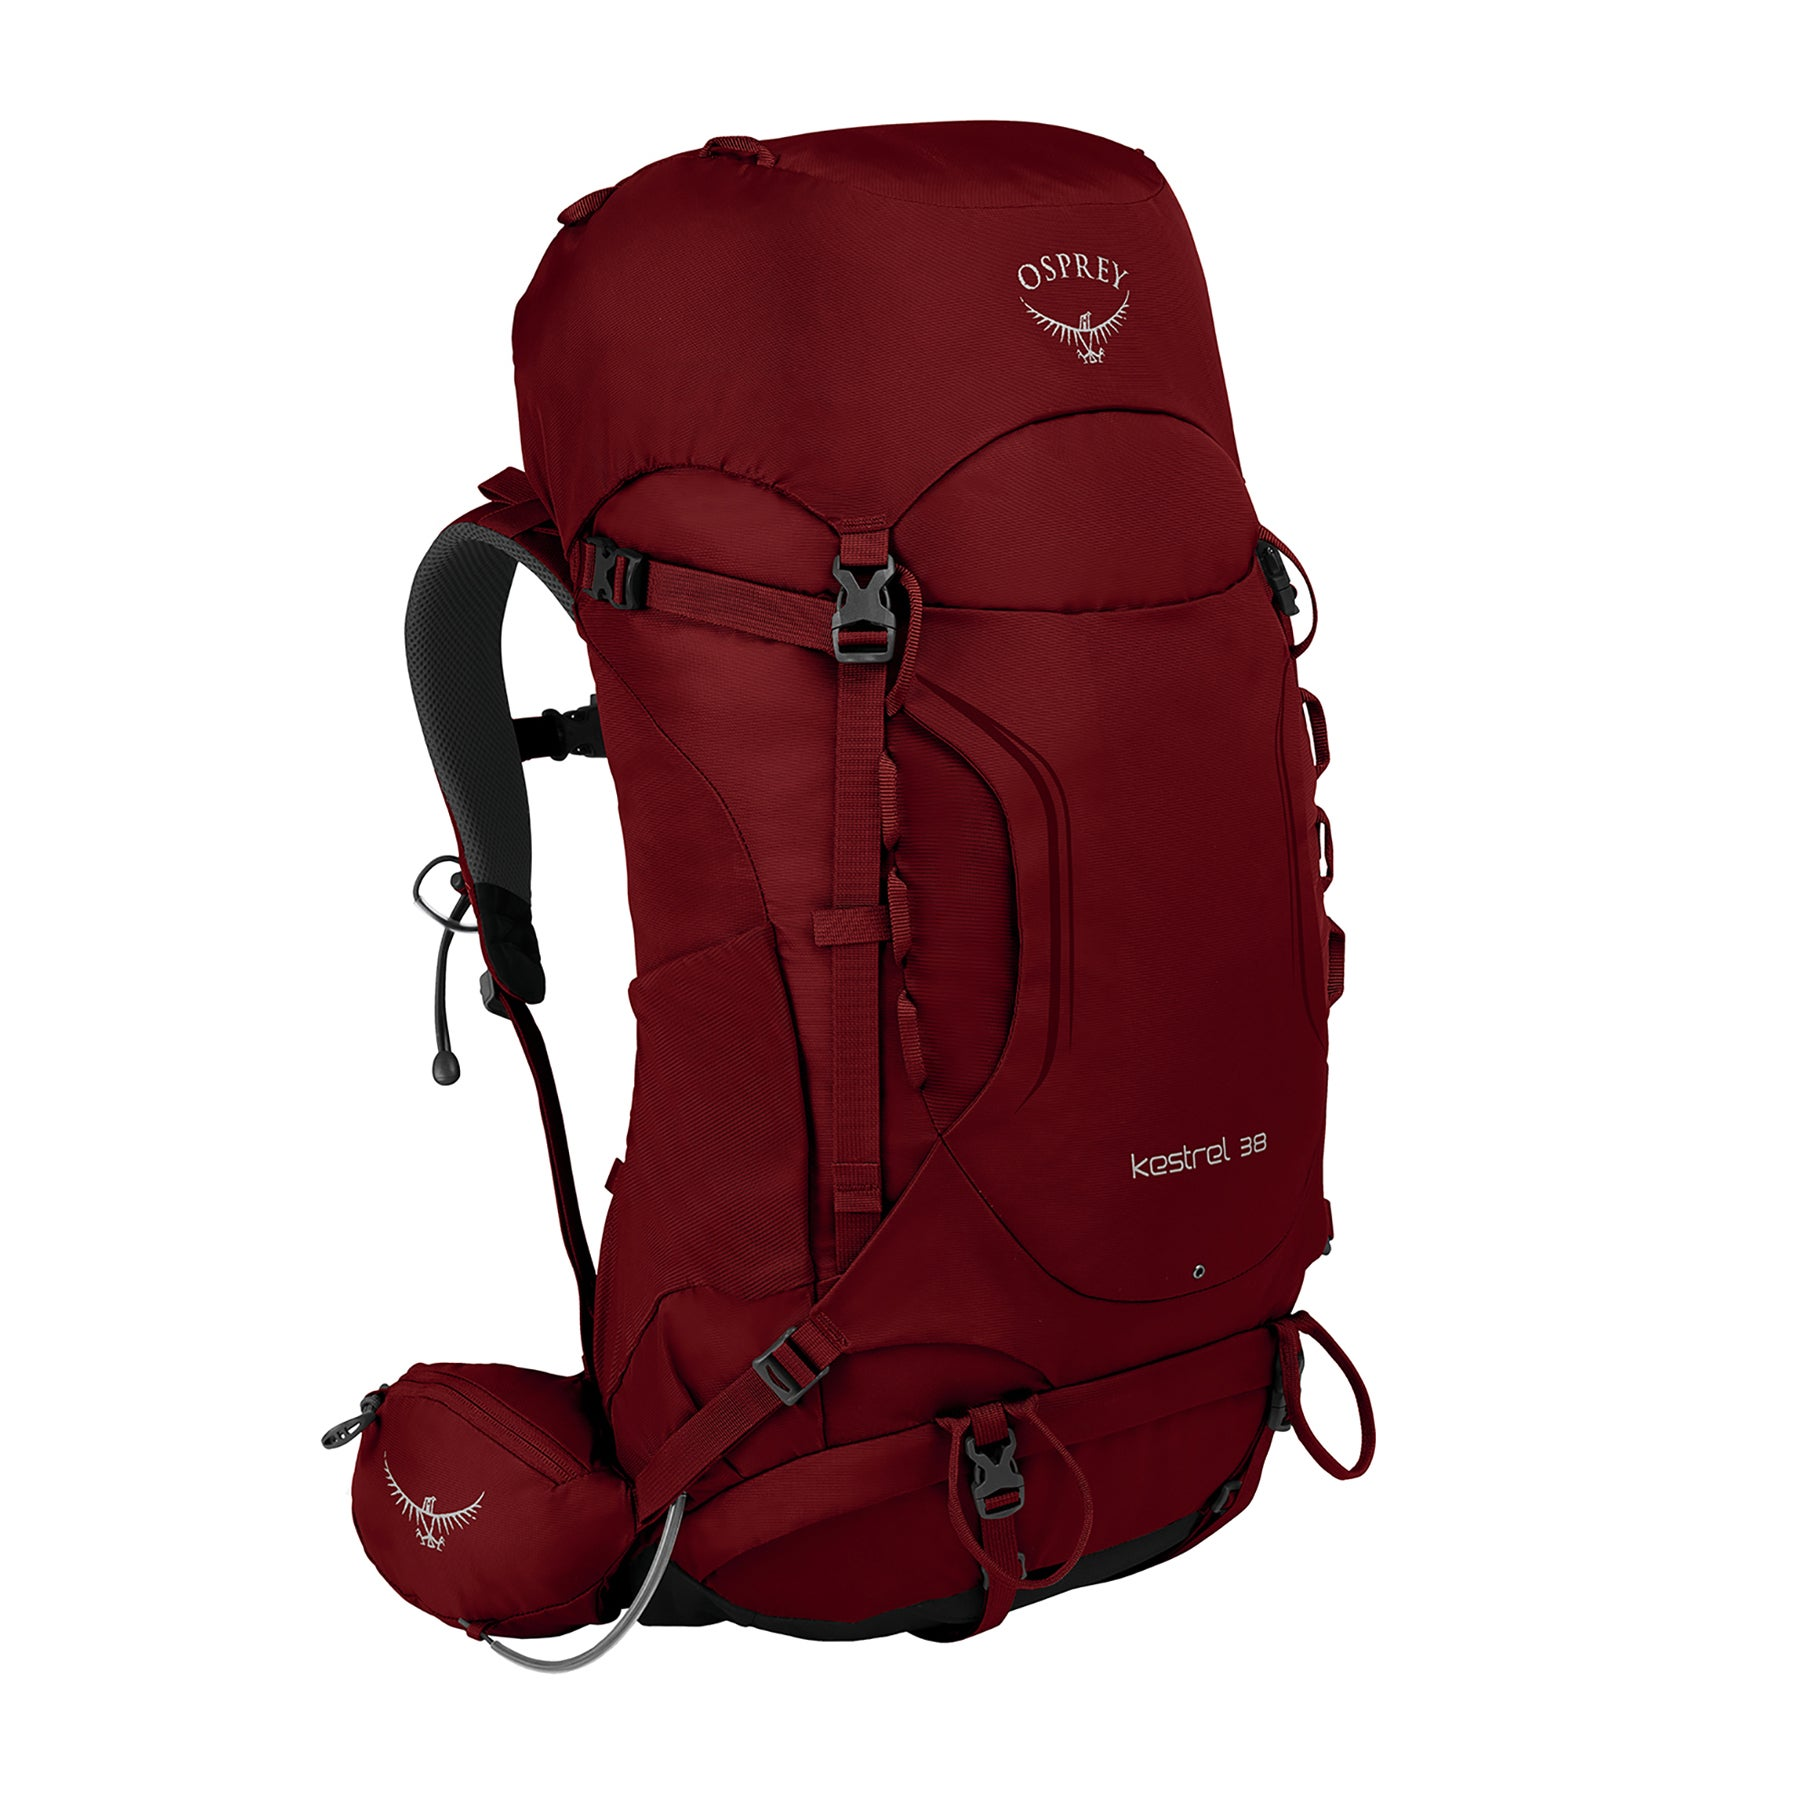 Osprey Kestrel 38 Hiking Backpack - Rogue Red